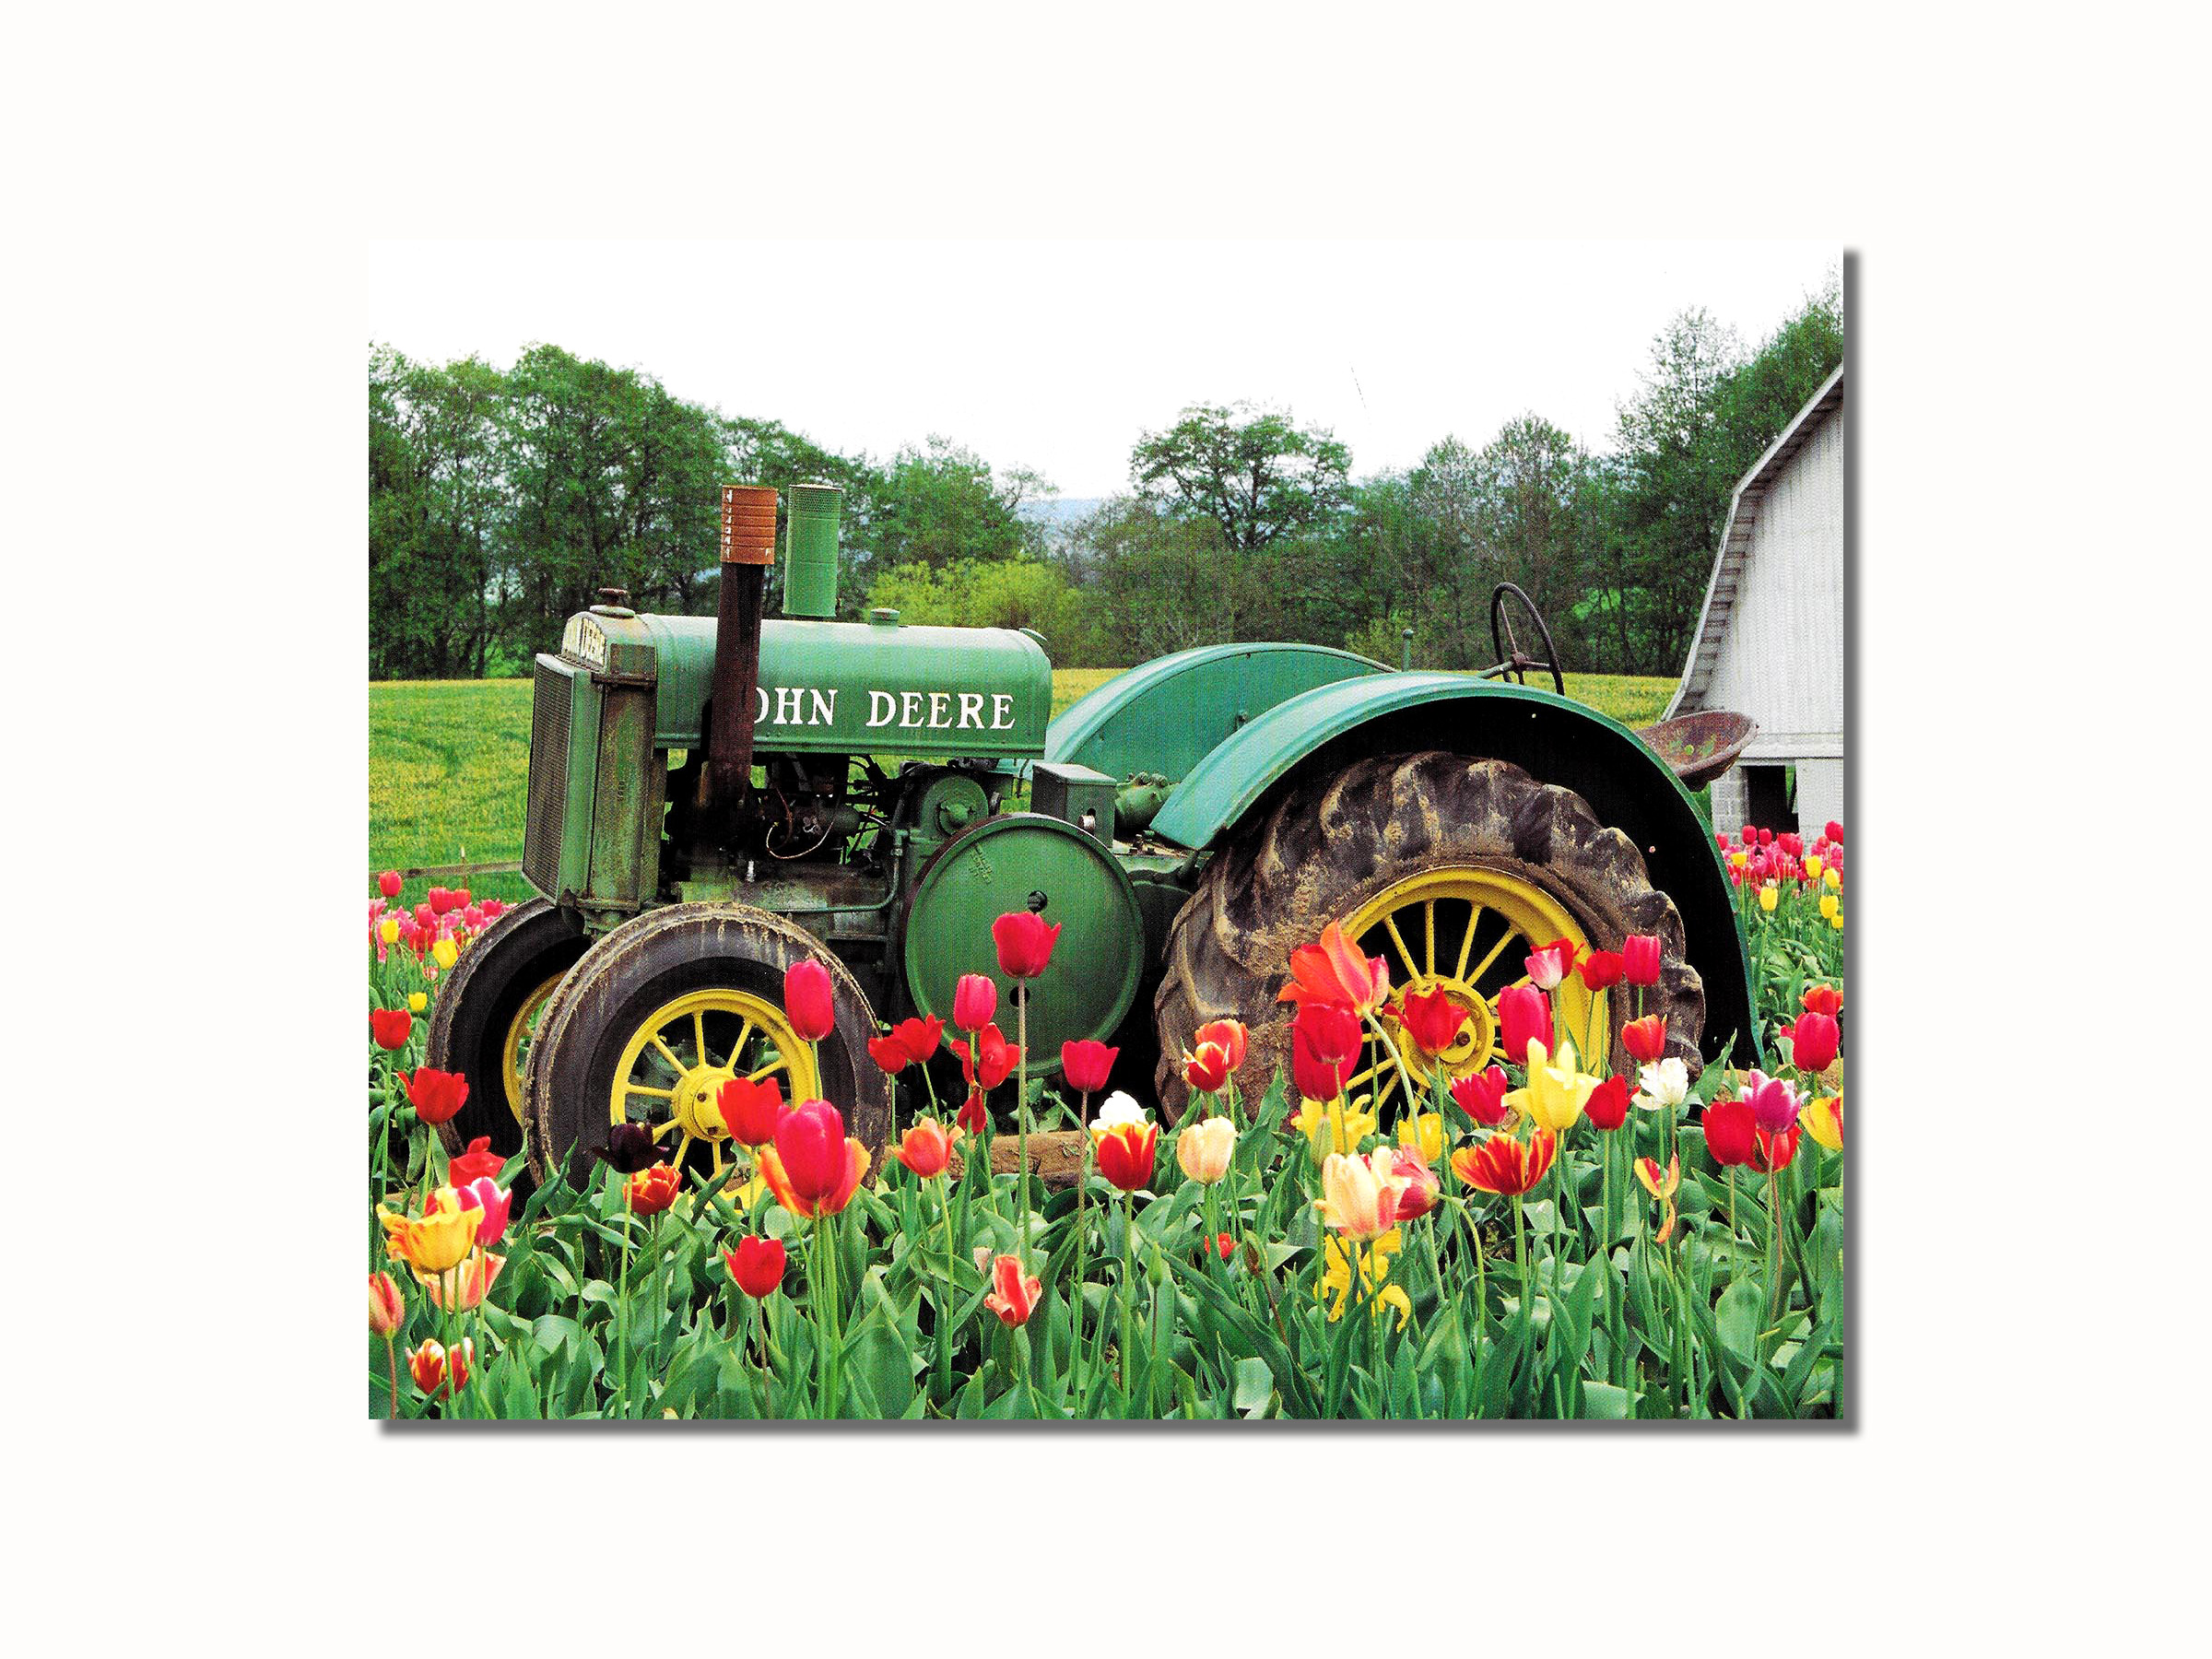 Old John Deere Tractor In Tulips Near Barn Wall Picture 8x10 Art